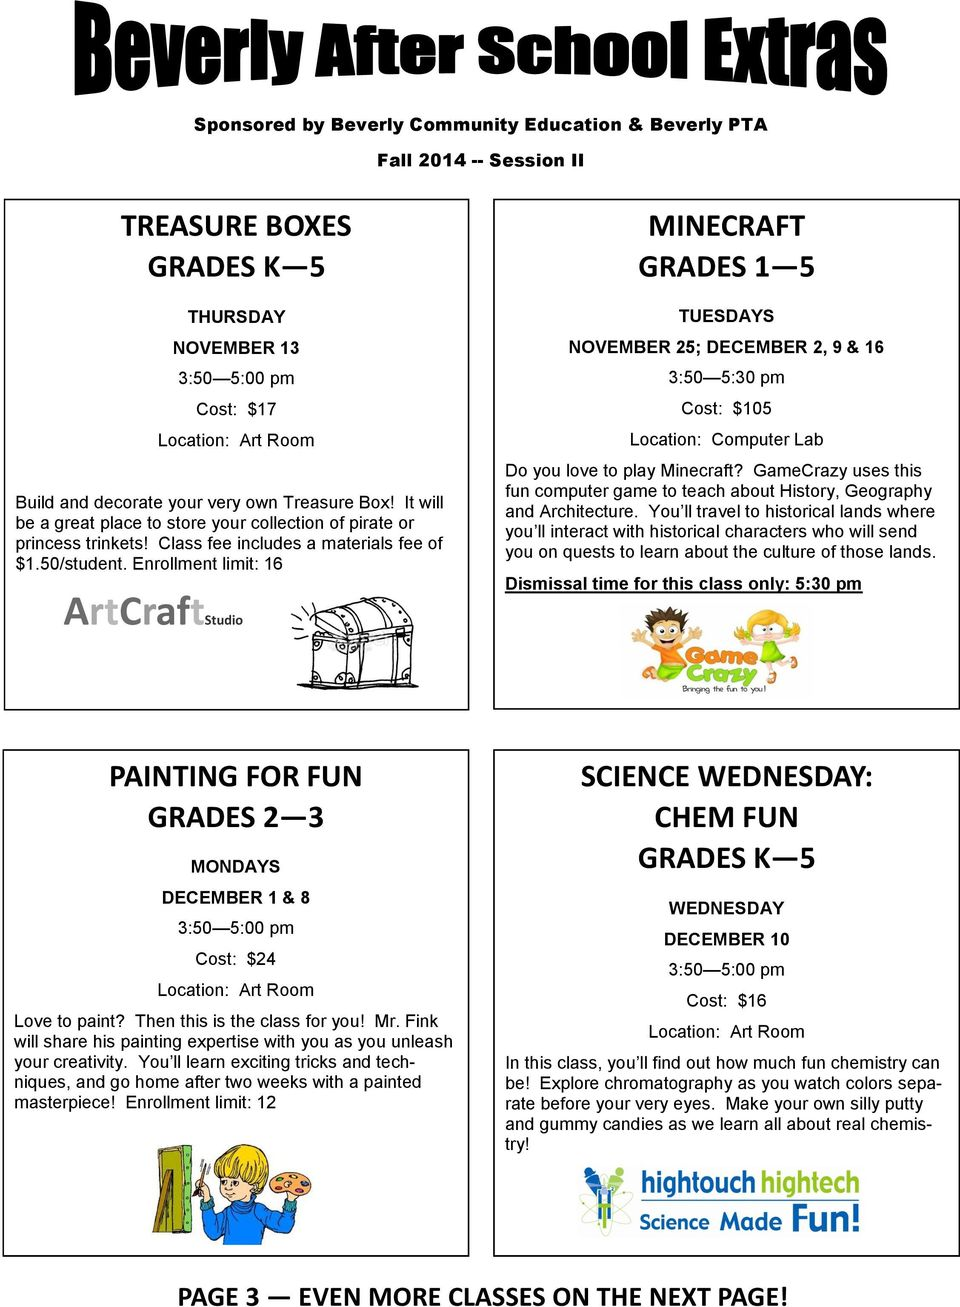 Enrollment limit: 16 ArtCraftStudio MINECRAFT GRADES 1 5 TUESDAYS NOVEMBER 25; DECEMBER 2, 9 & 16 3:50 5:30 pm Cost: $105 Location: Computer Lab Do you love to play Minecraft?